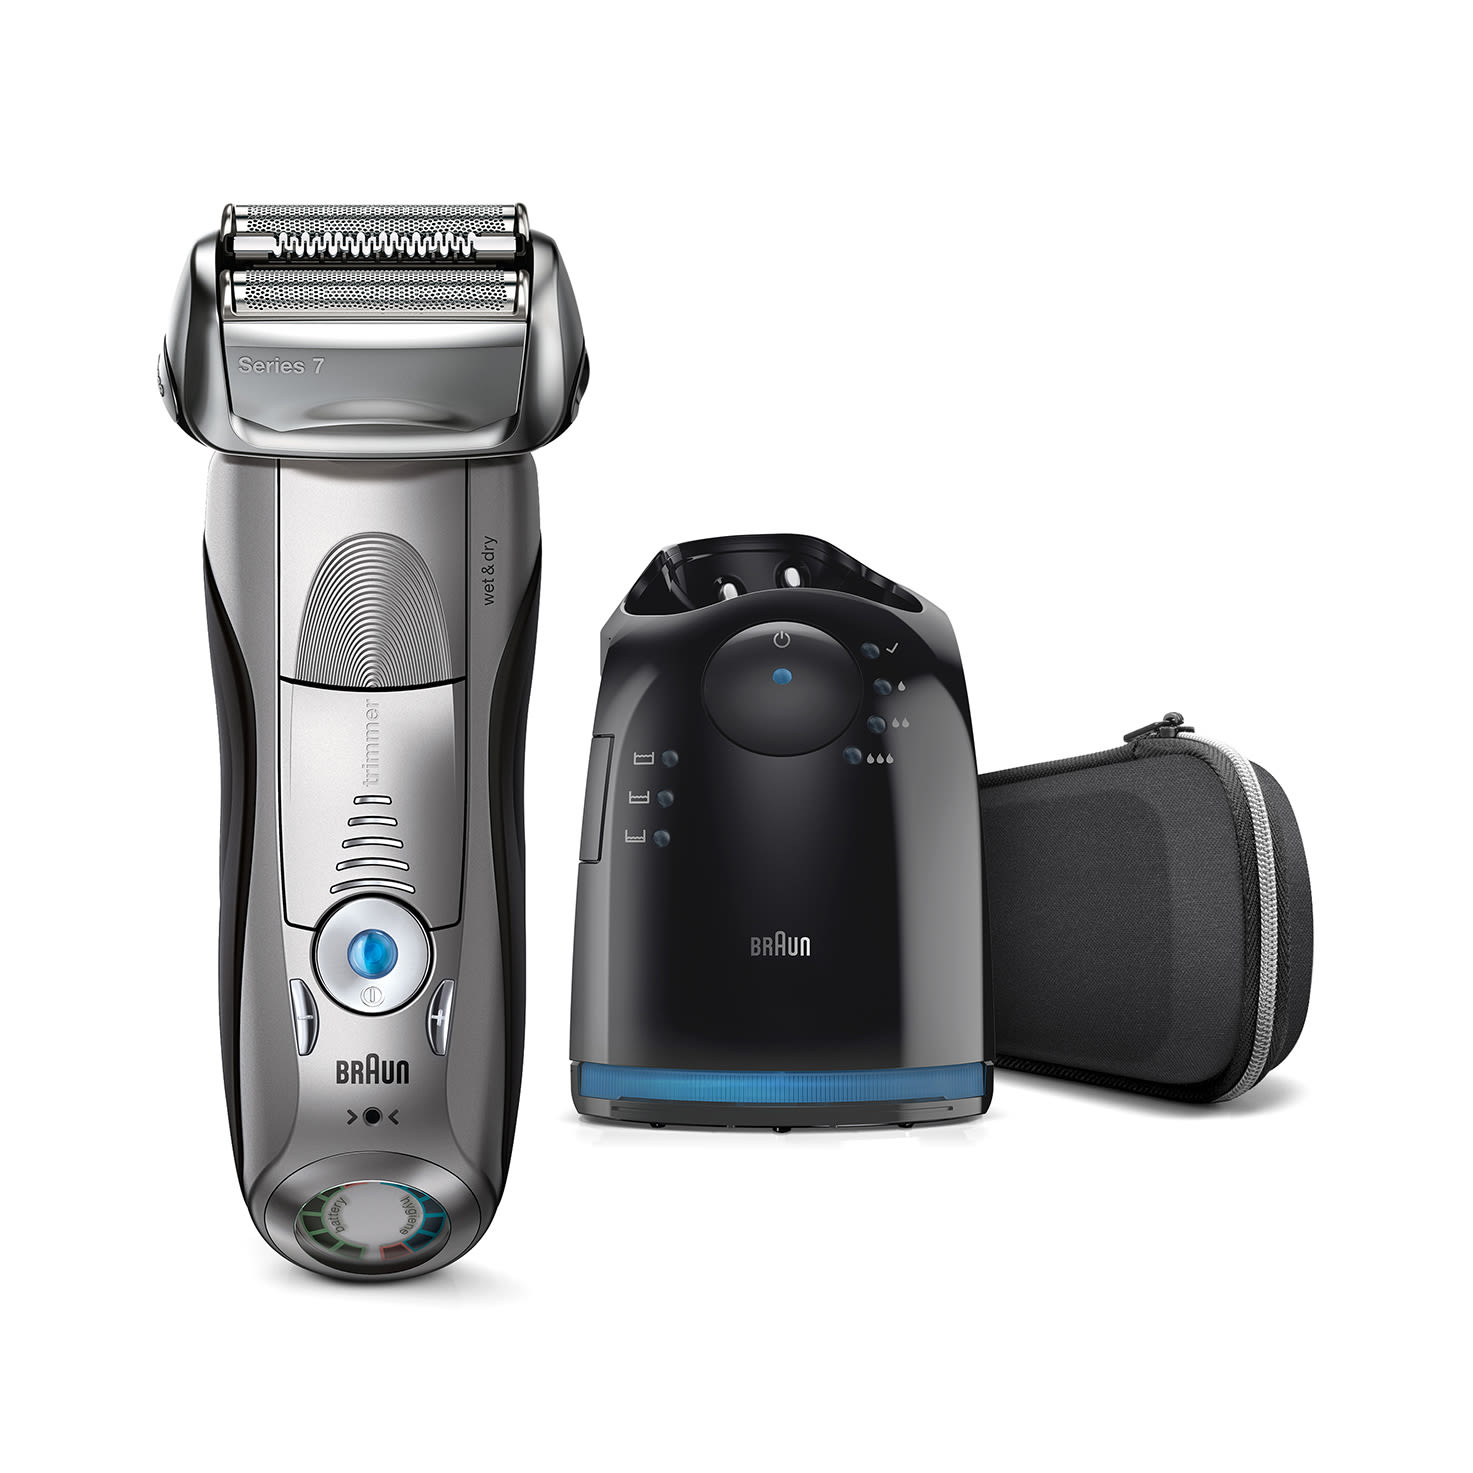 Series 7 silver with SmartCare Center